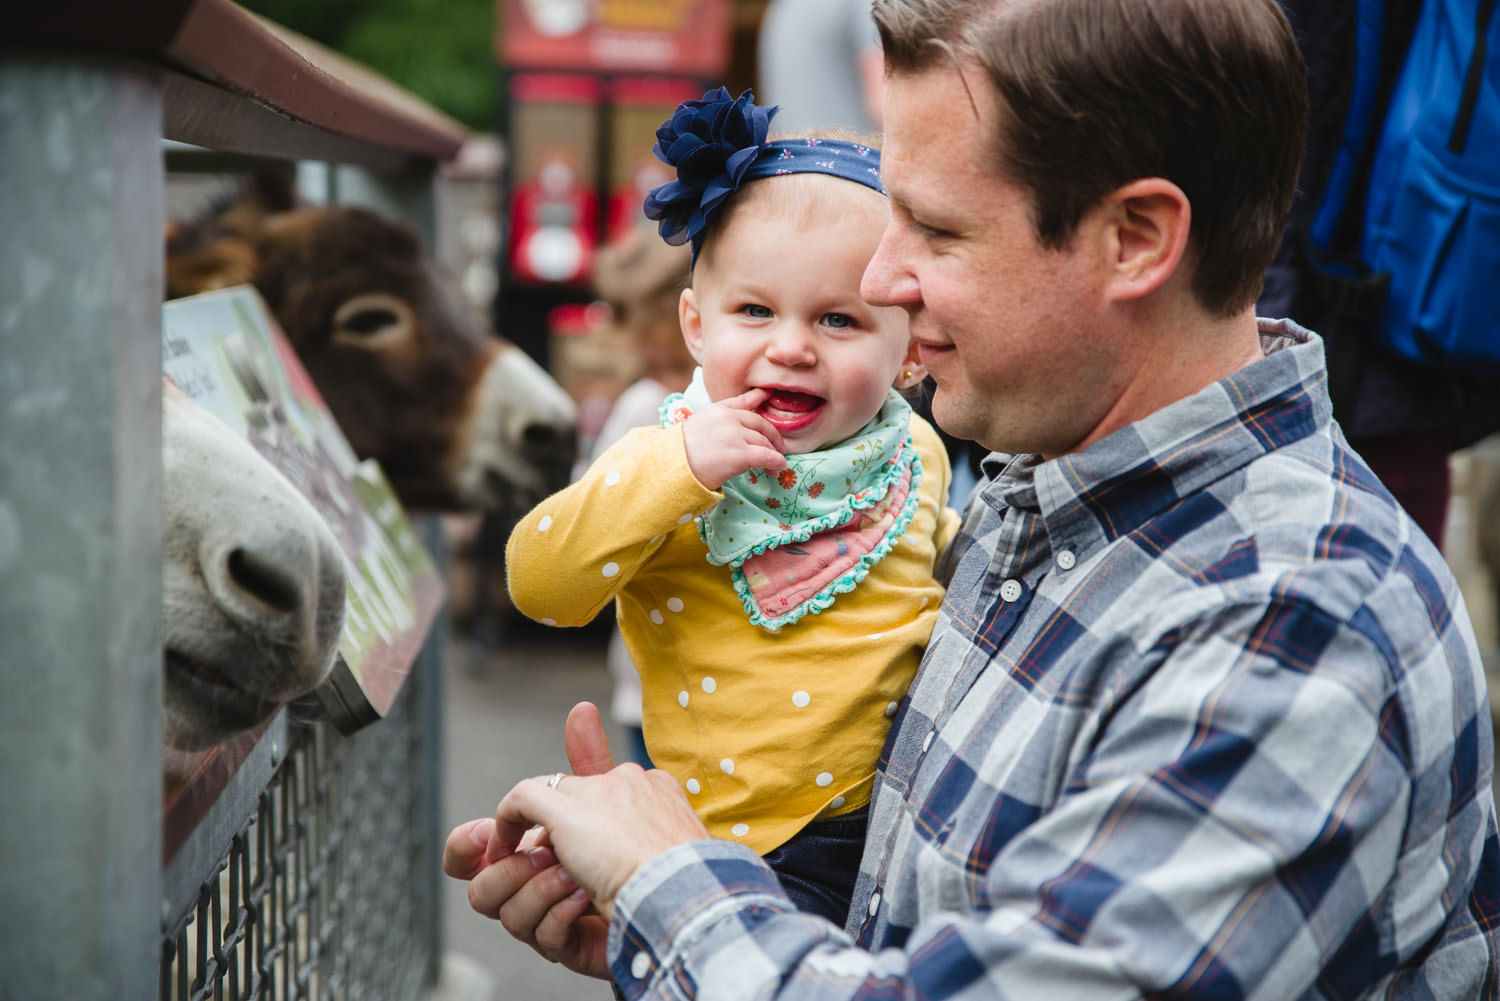 A father and his baby daughter feed a donkey at the Bronx Zoo.